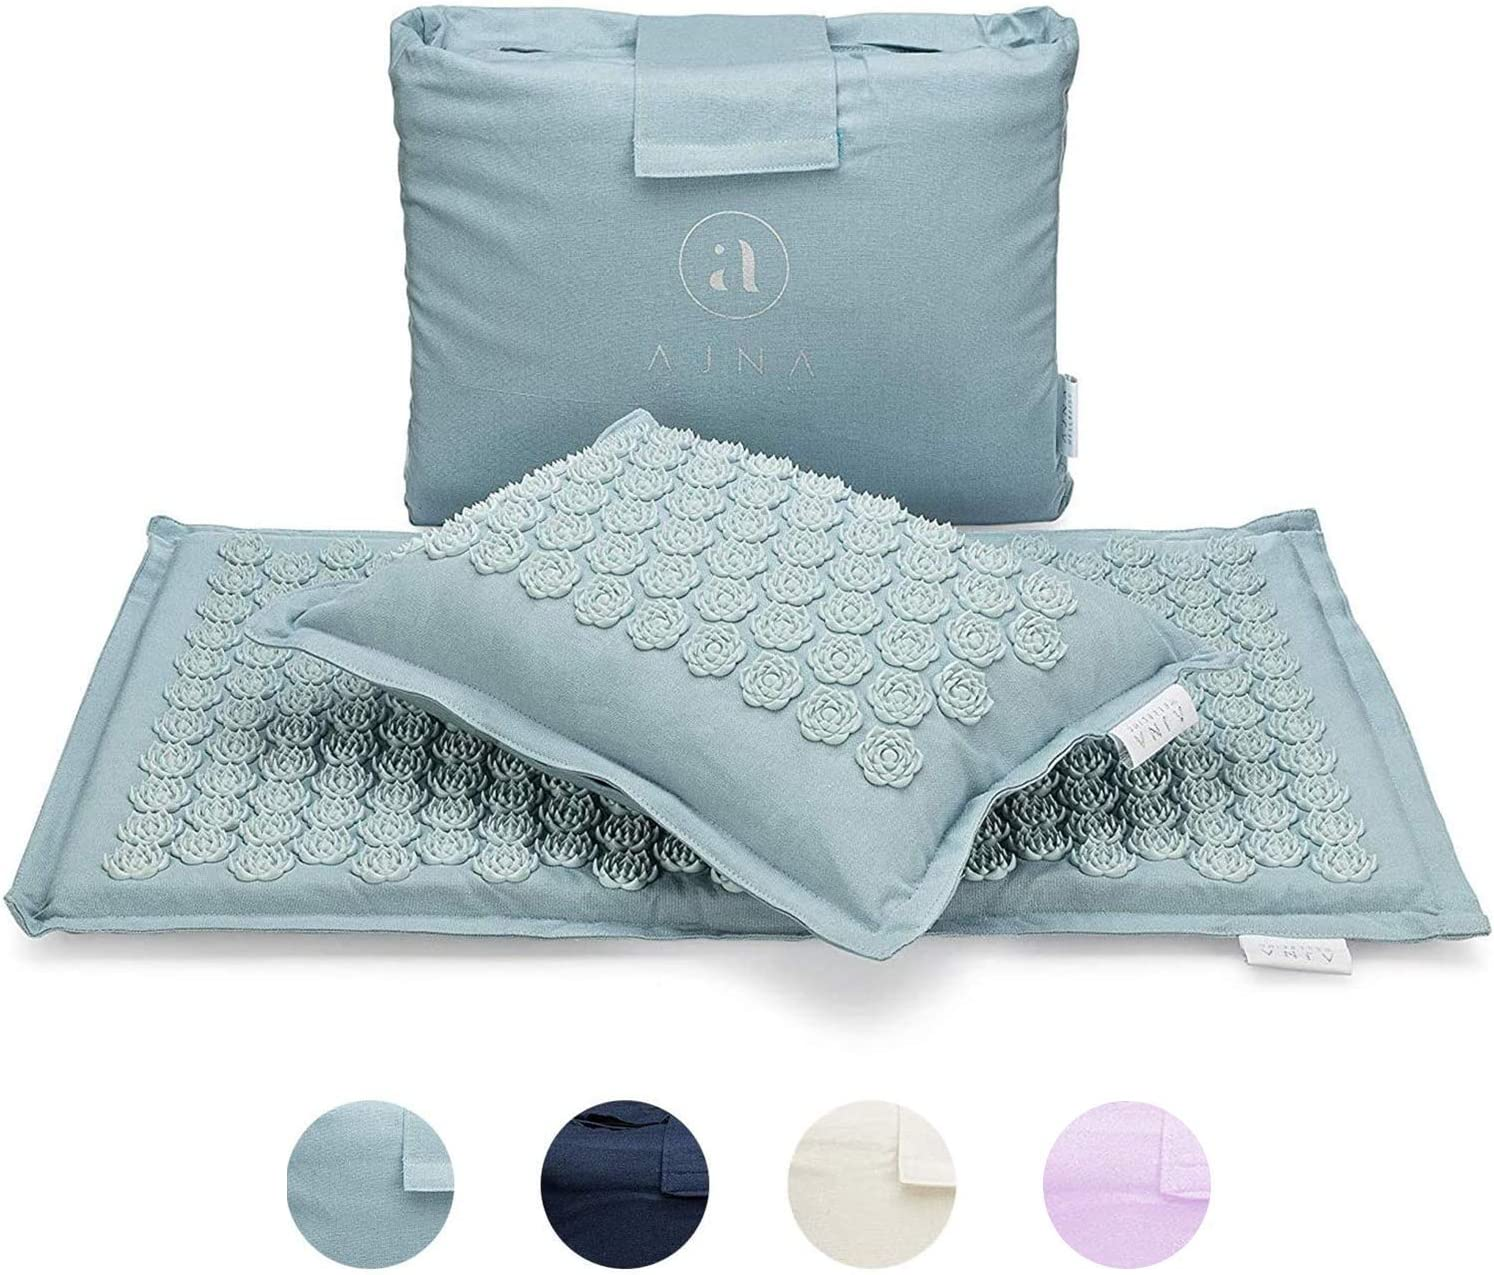 Ajna Acupressure Mat and Pillow Set - Ideal for Back Pain Relief and Neck Pain Relief - Advanced Stress Reliever - Muscle Relaxant - Free Tote Bag - Eco Lite (Sky Blue): Sports & Outdoors